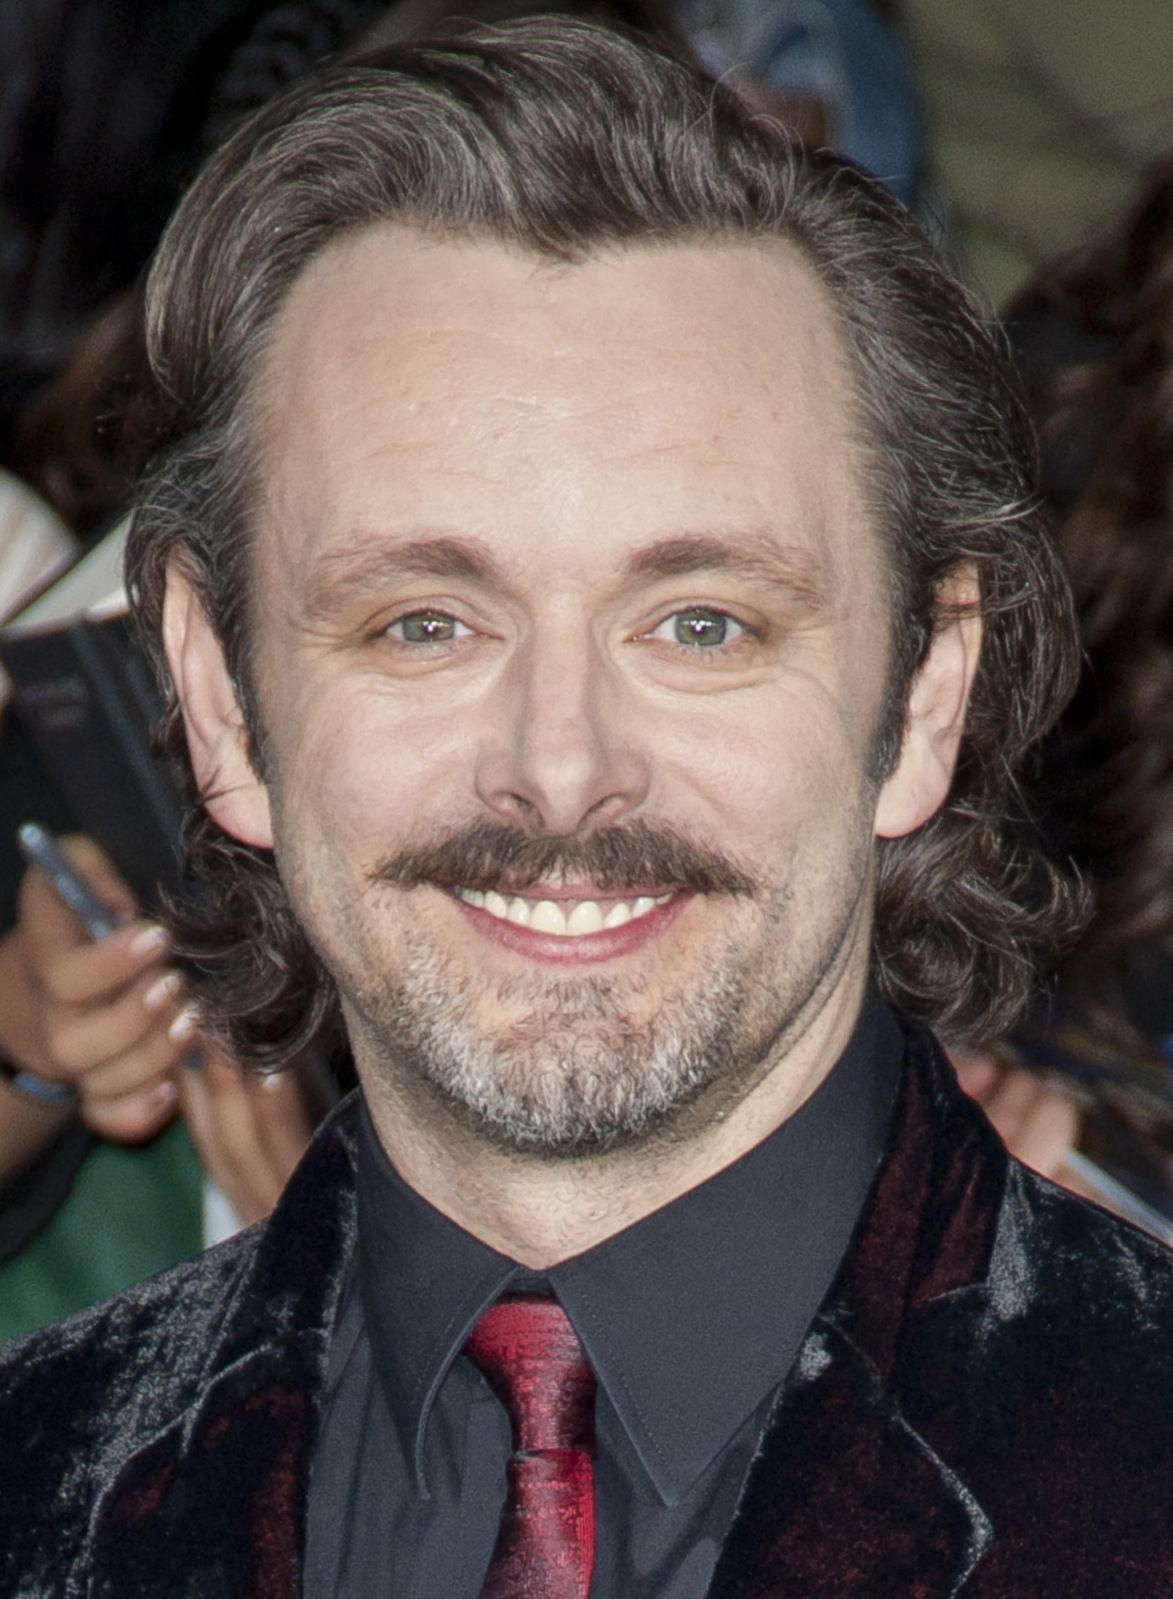 Michael Sheen (born 1969) nude (24 pics), photos Fappening, Twitter, lingerie 2019